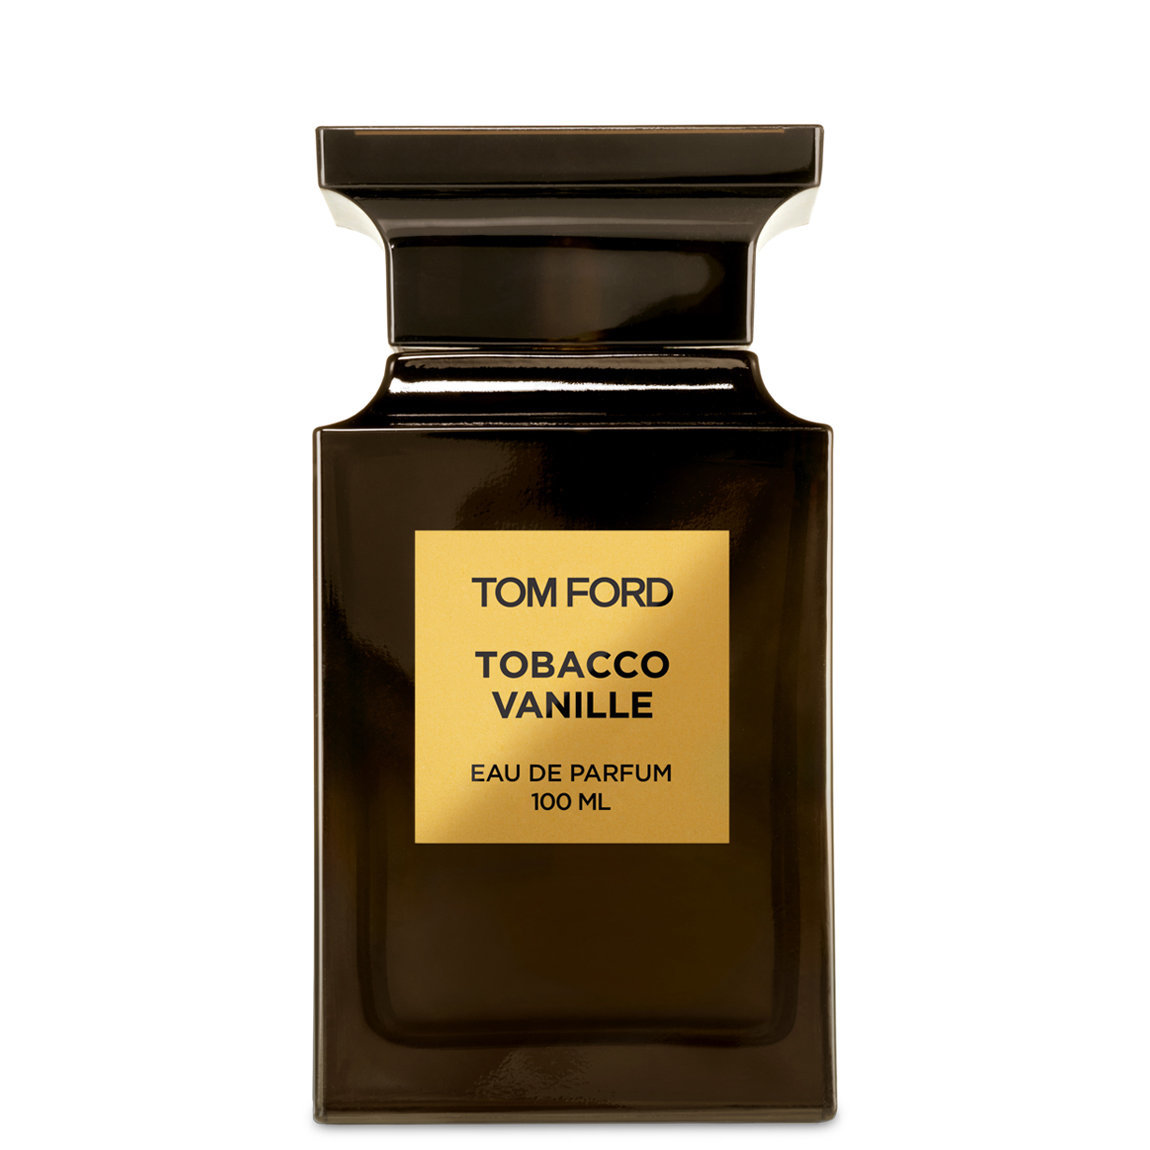 TOM FORD Tobacco Vanille 100 ml product swatch.